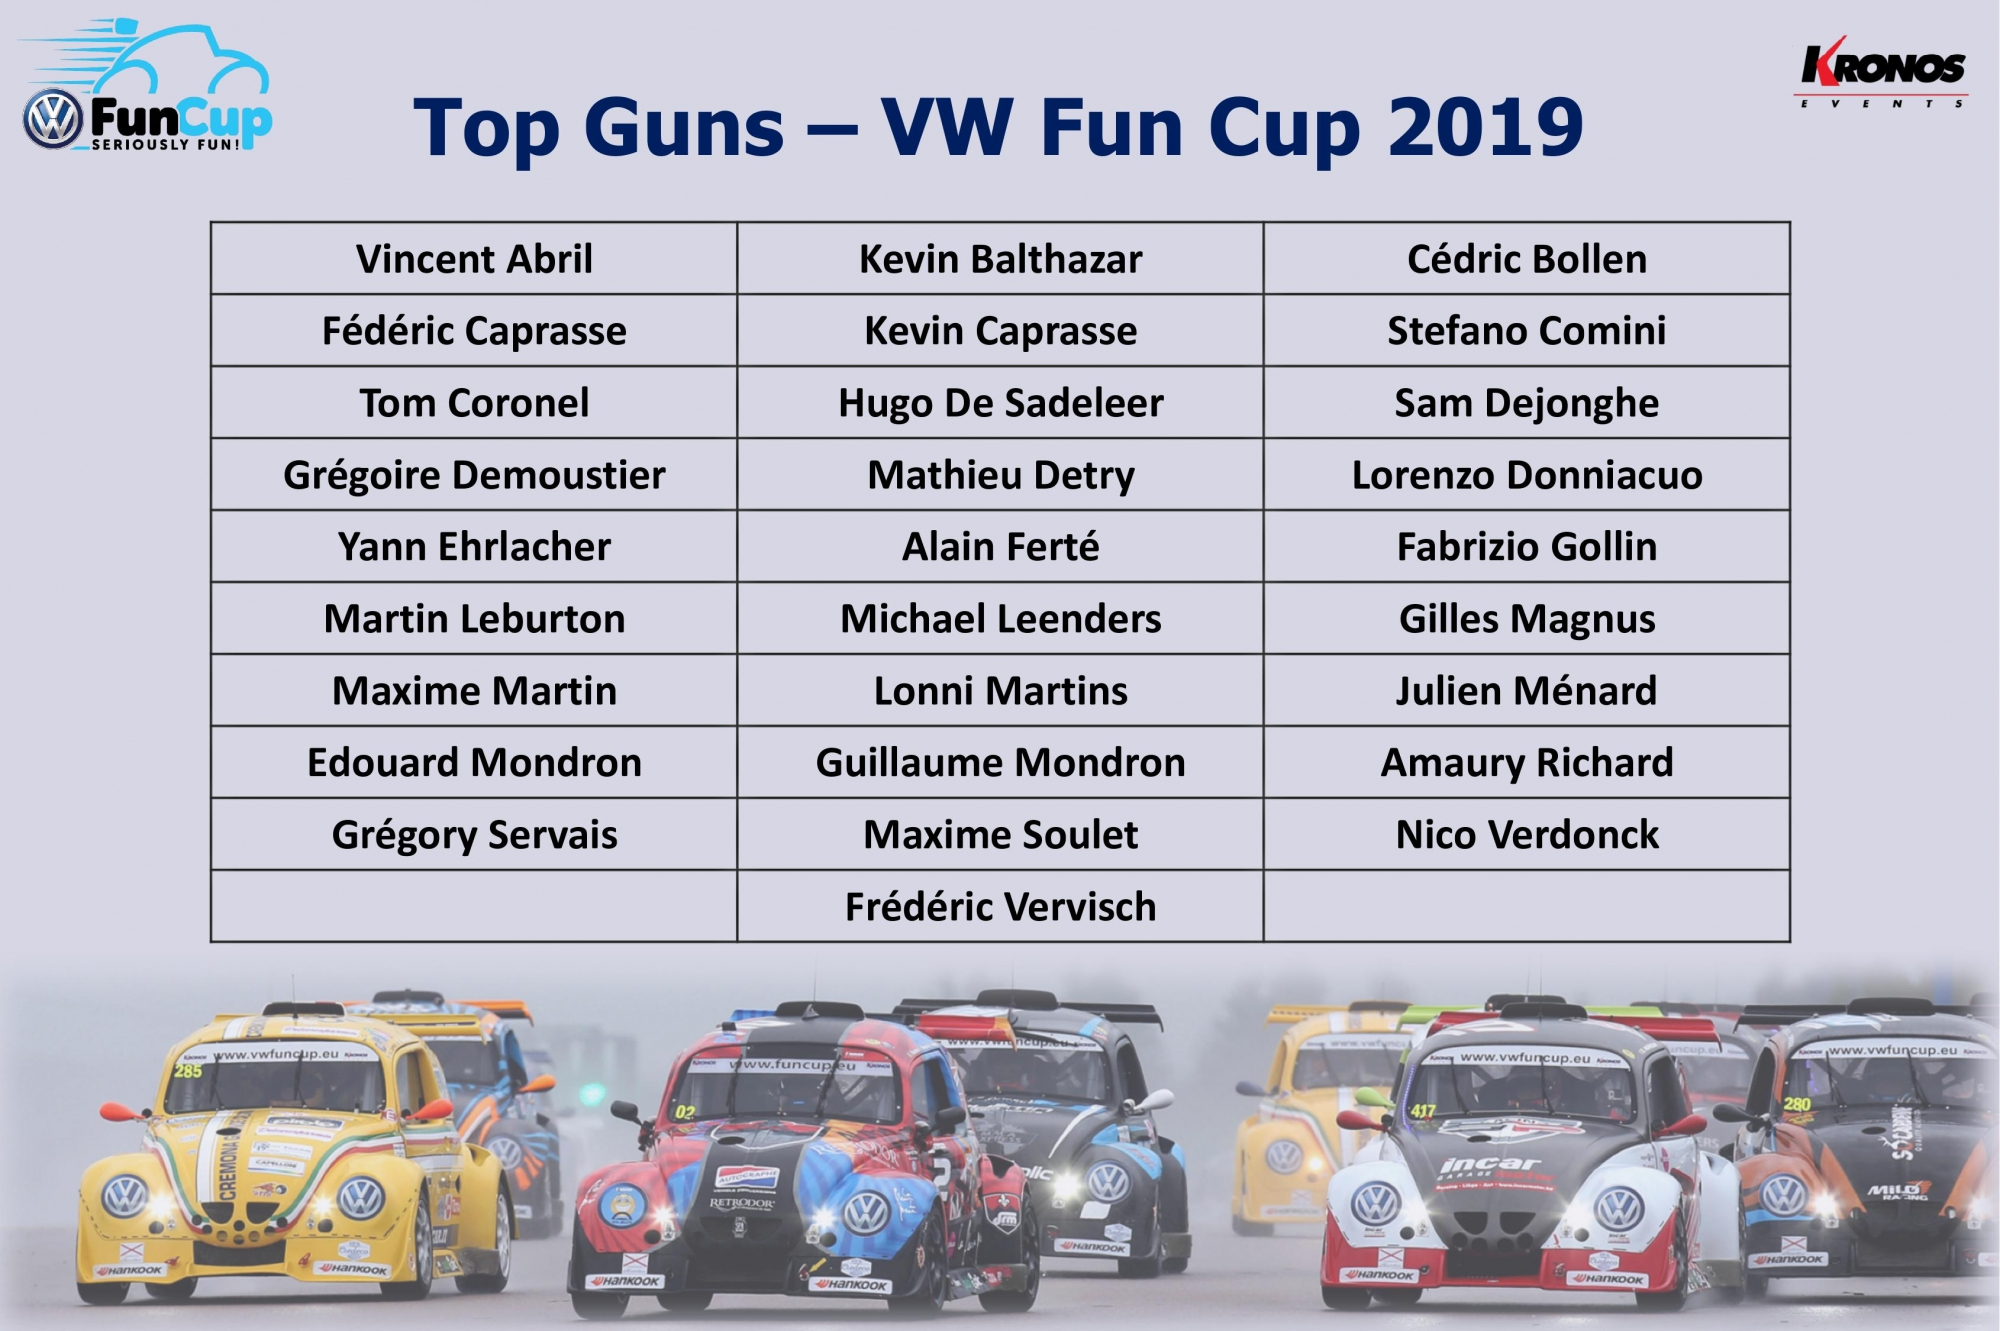 image 2 - Kronos Events confirme la liste des « Top Guns » pour la saison 2019